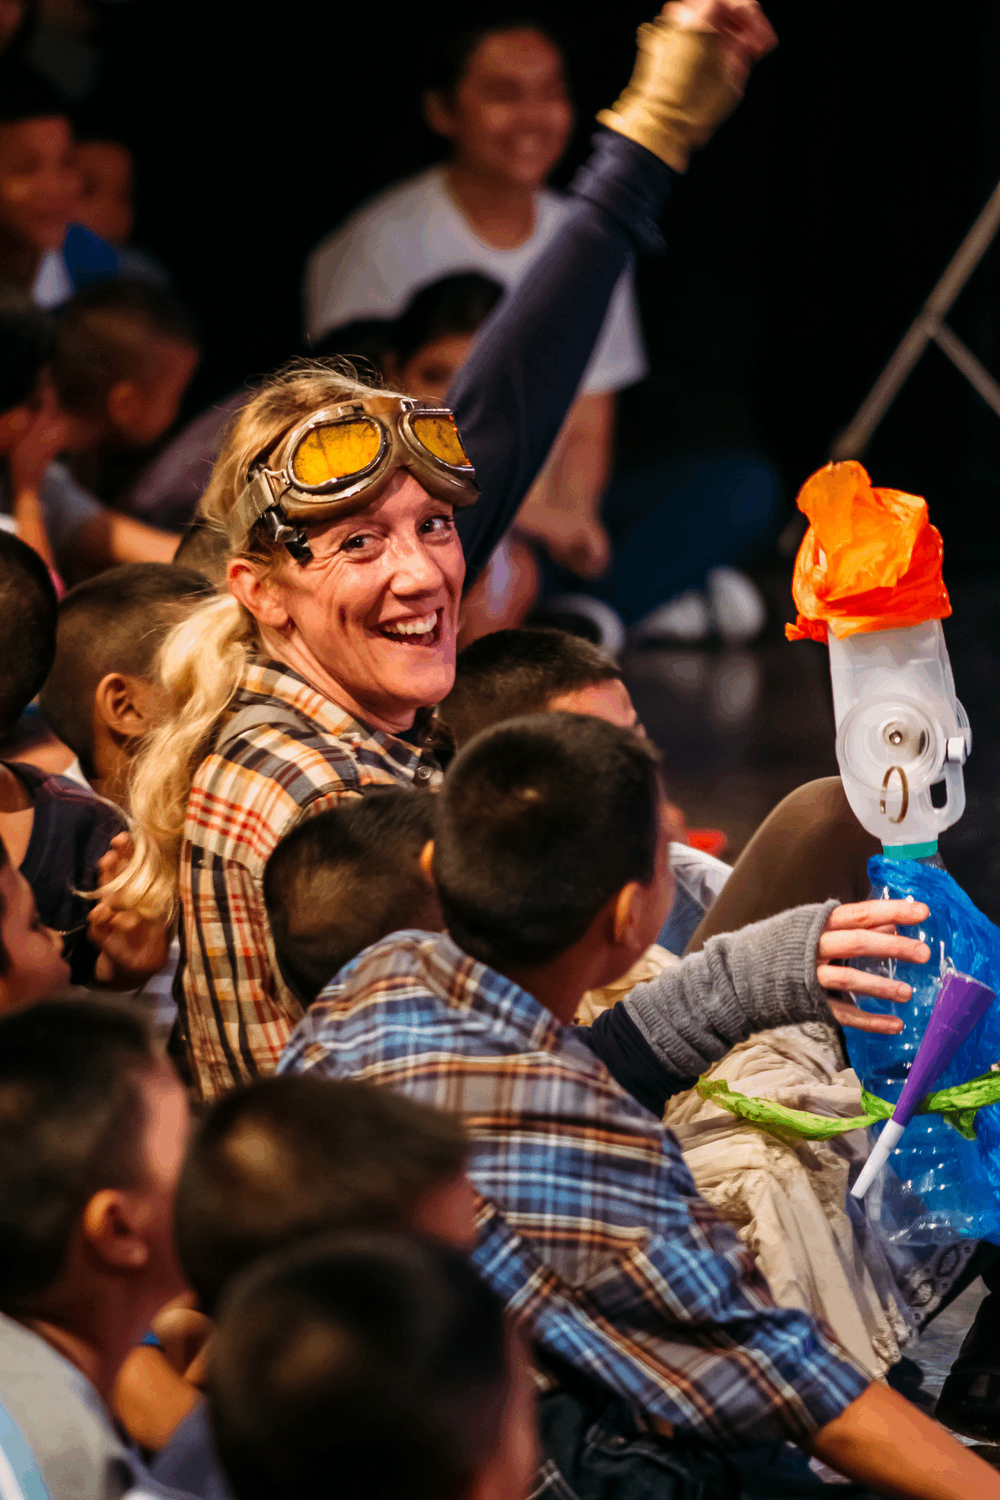 performer sitting with audience of young children, holding puppet made of plastic bags and plastic milk bottle